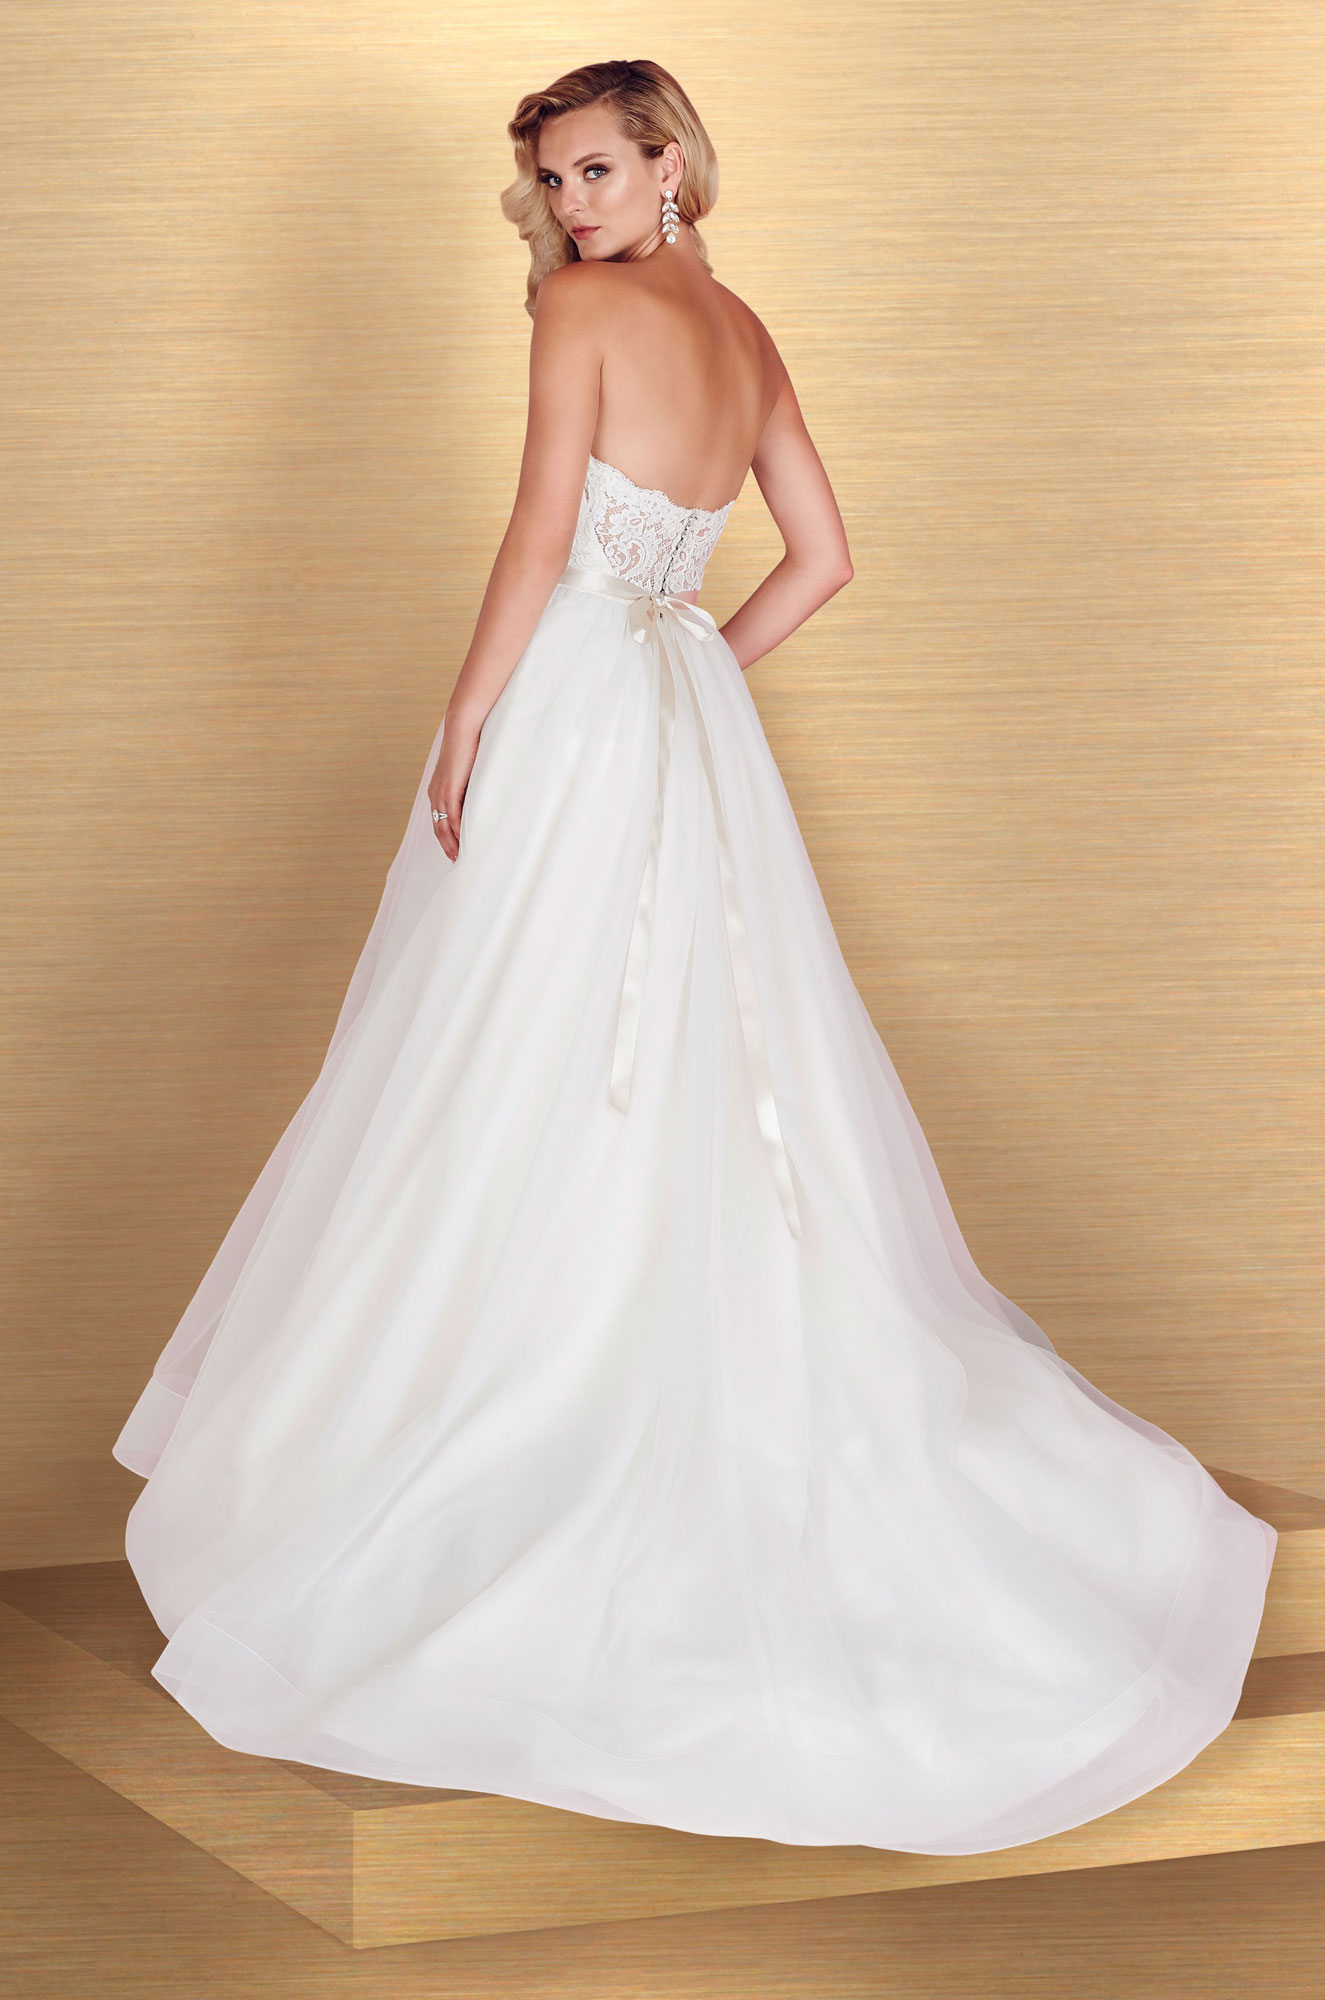 Tulle Skirt Ball Gown Wedding Dress - Style #4668 | Paloma Blanca